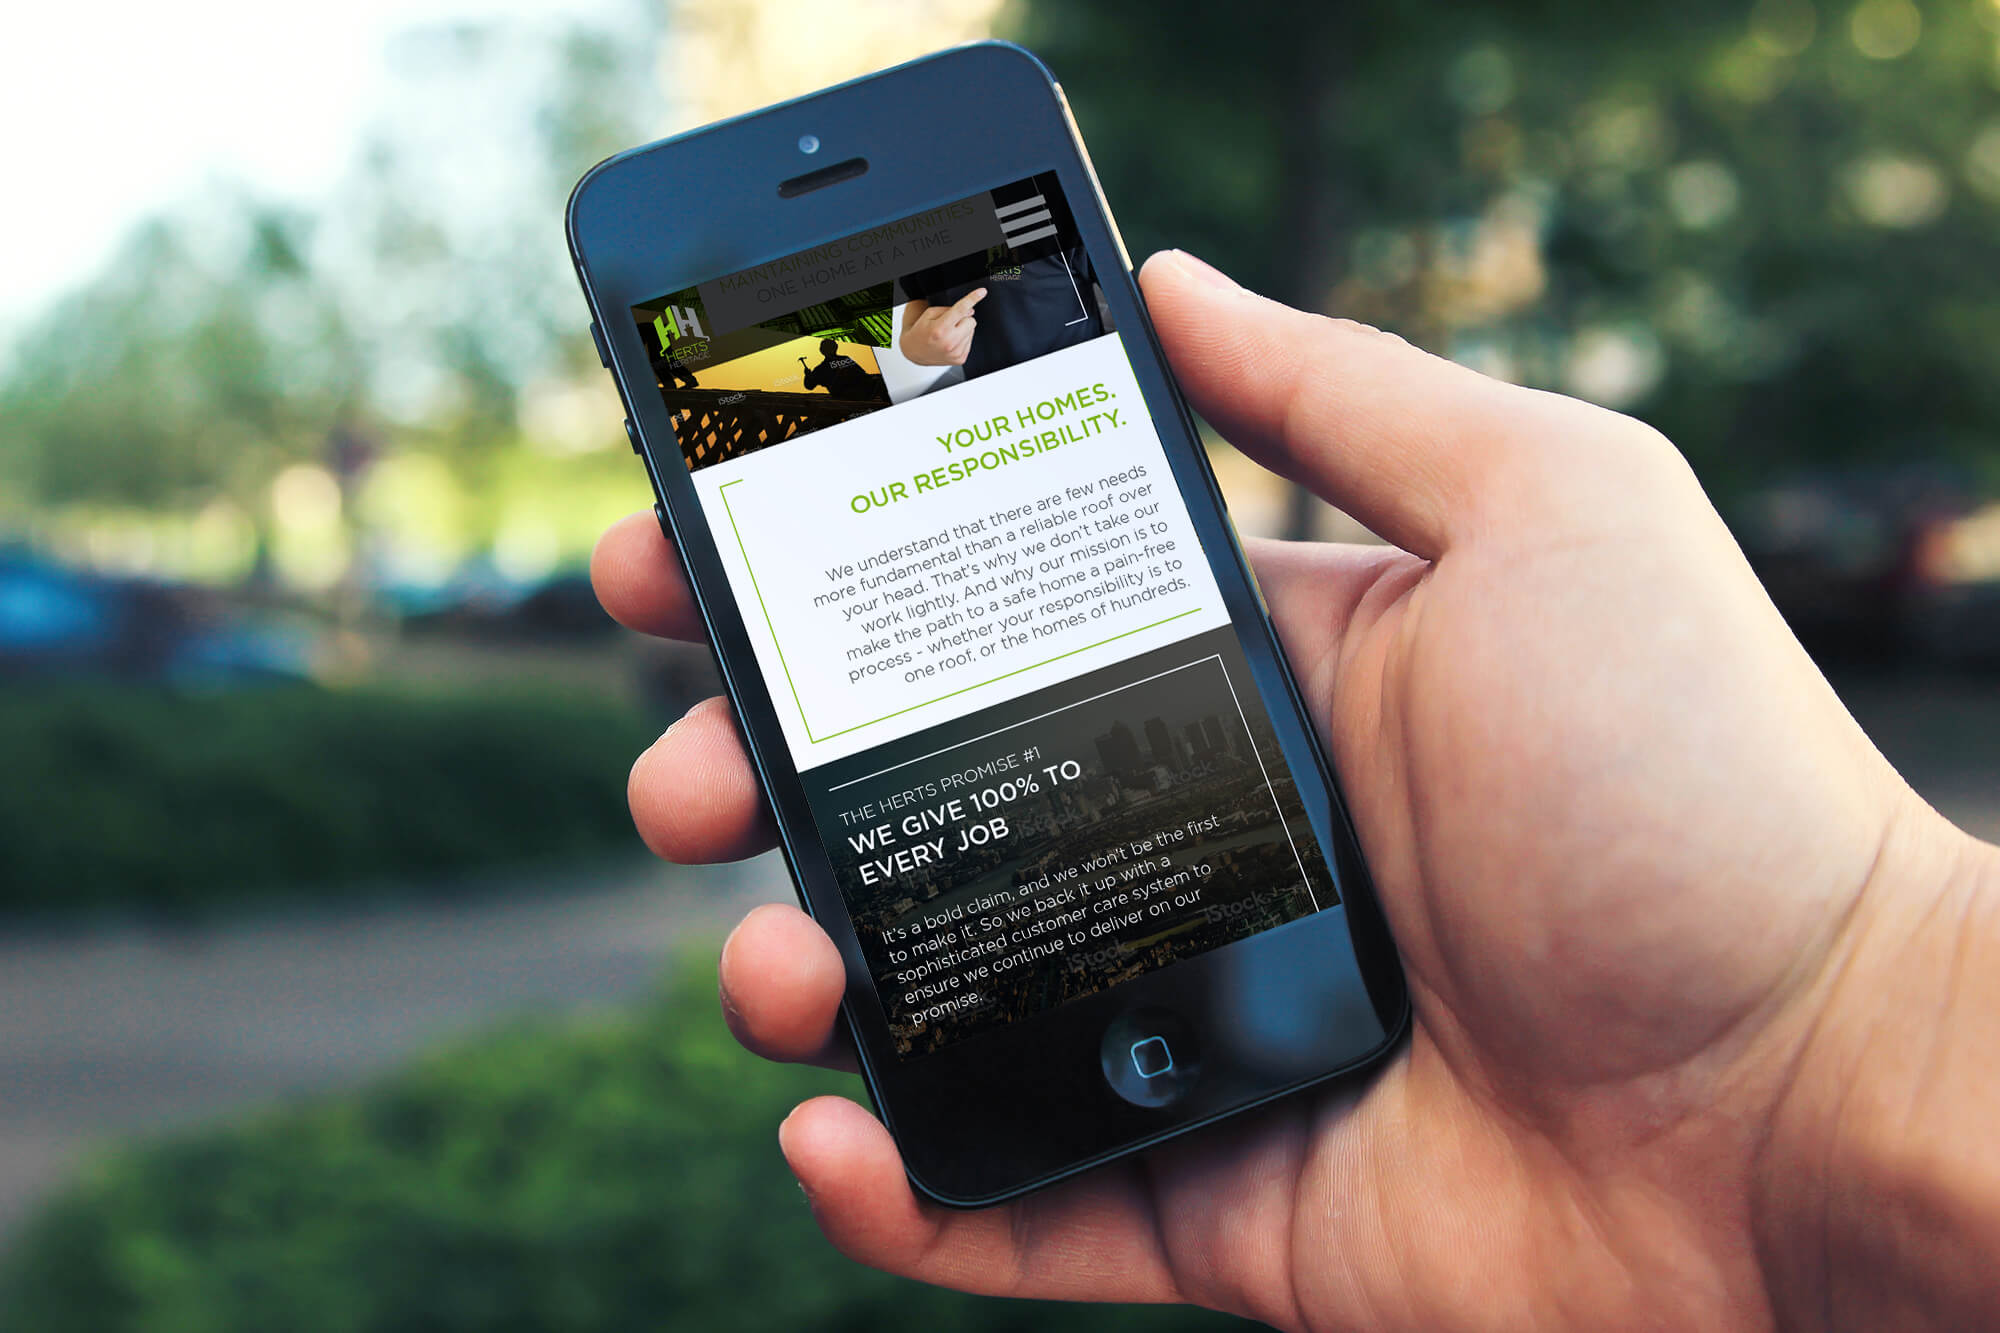 Close up of person holding an iPhone displaying the Herts Heritage website rebrand design